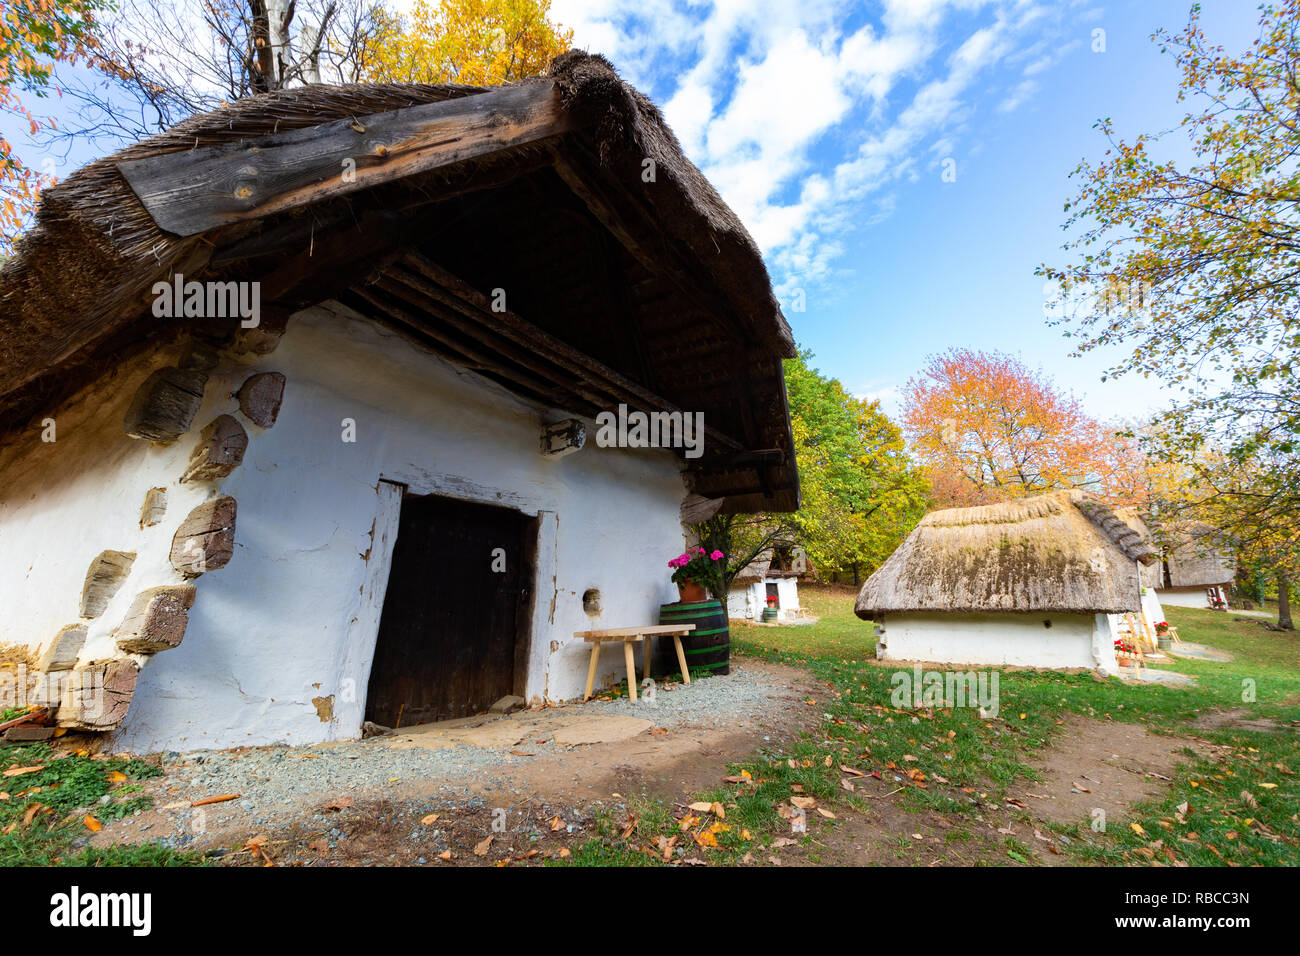 The so called `Row of Wine Cellars` open-air museum in Cak, Hungary. Small houses for pressing grapes and storing fruits, especially sweet chestnut, b - Stock Image